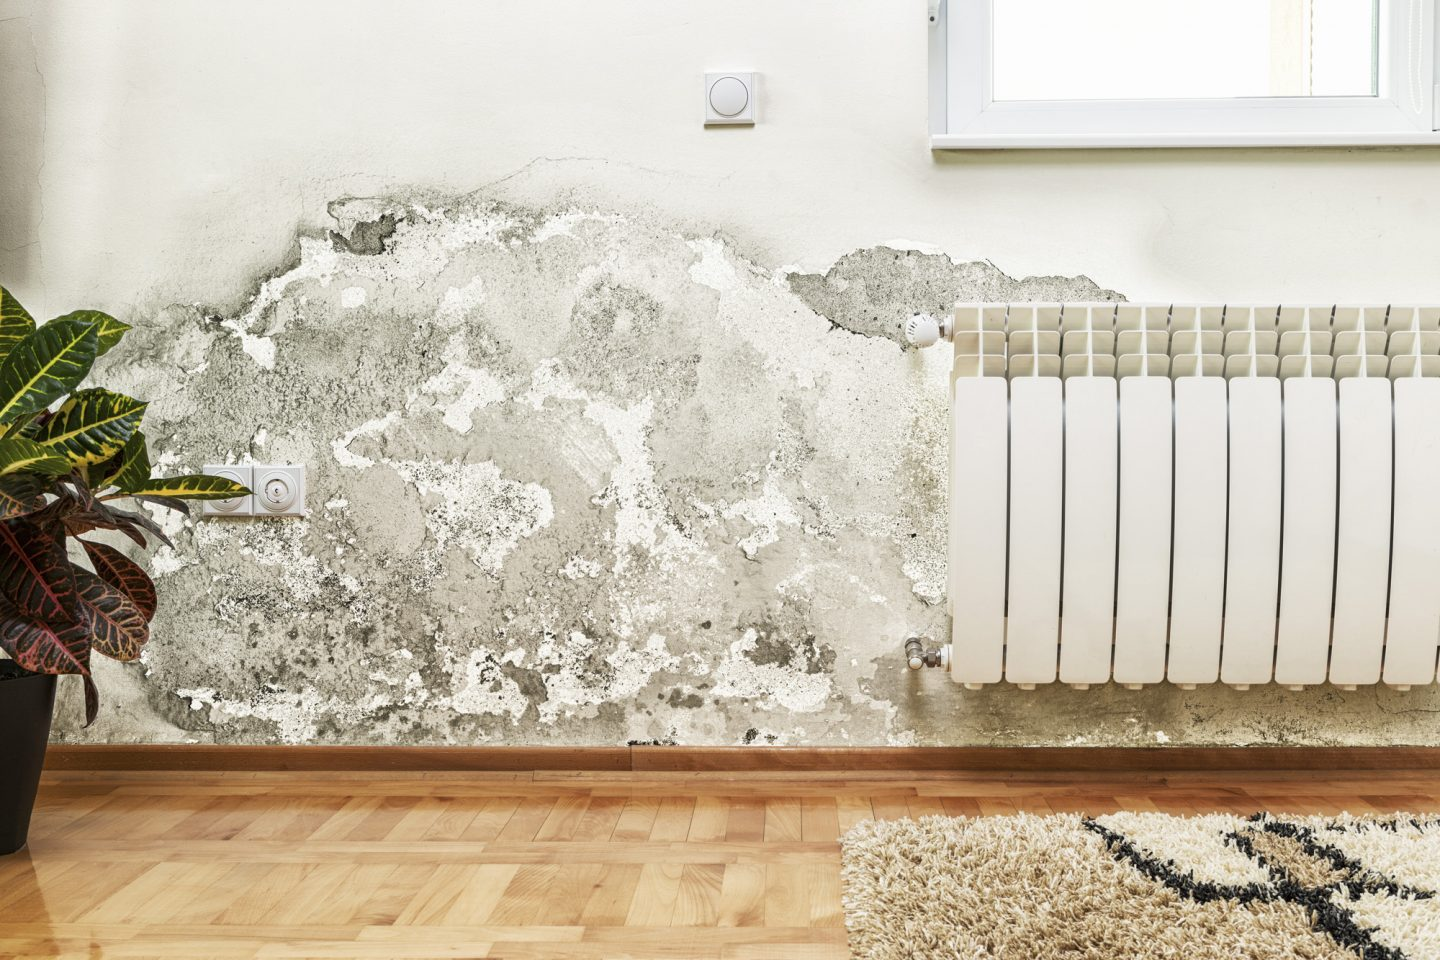 5 Common Signs You Have Mold in Your House